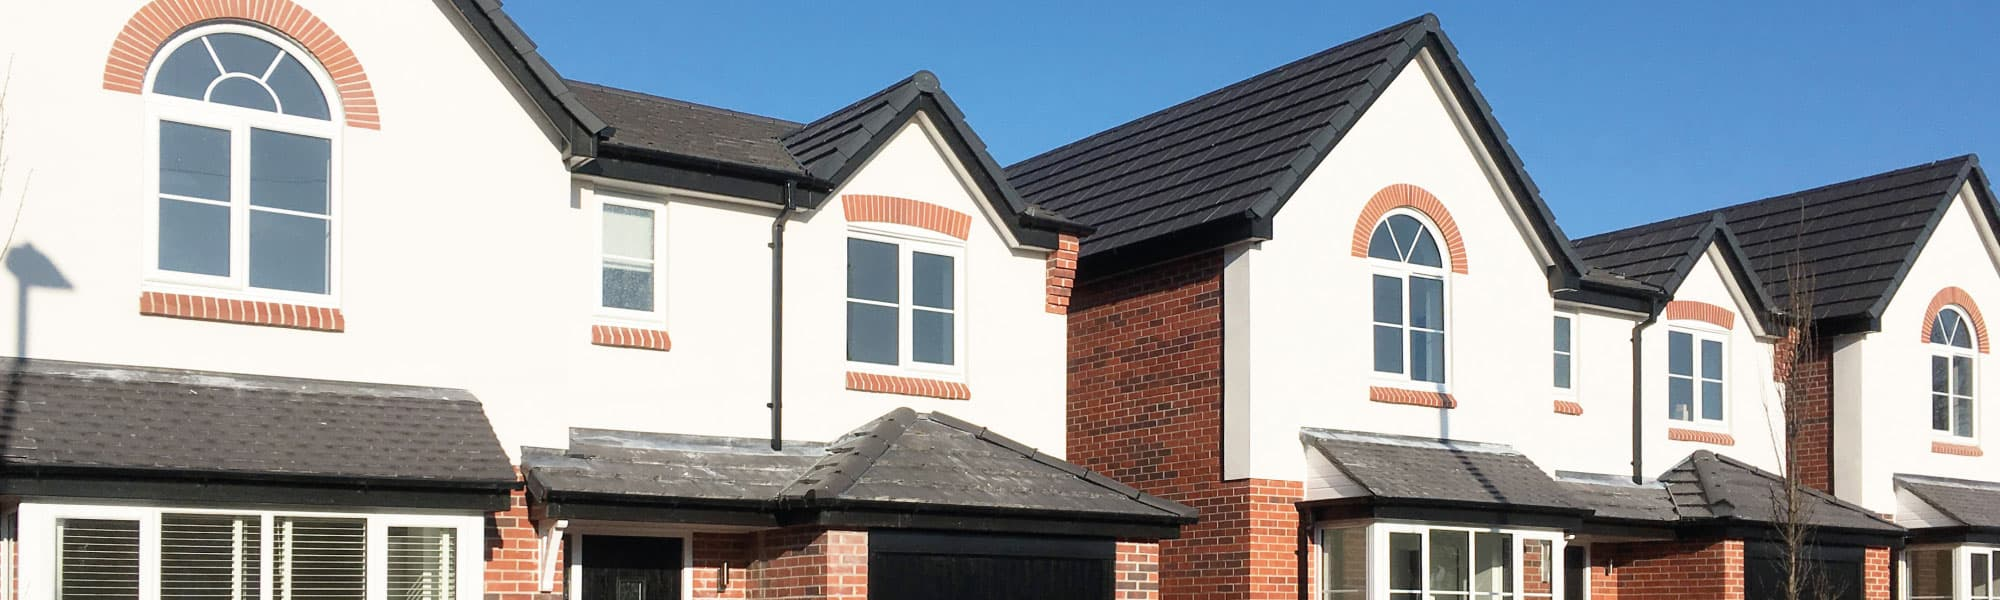 K Rend rendering projects